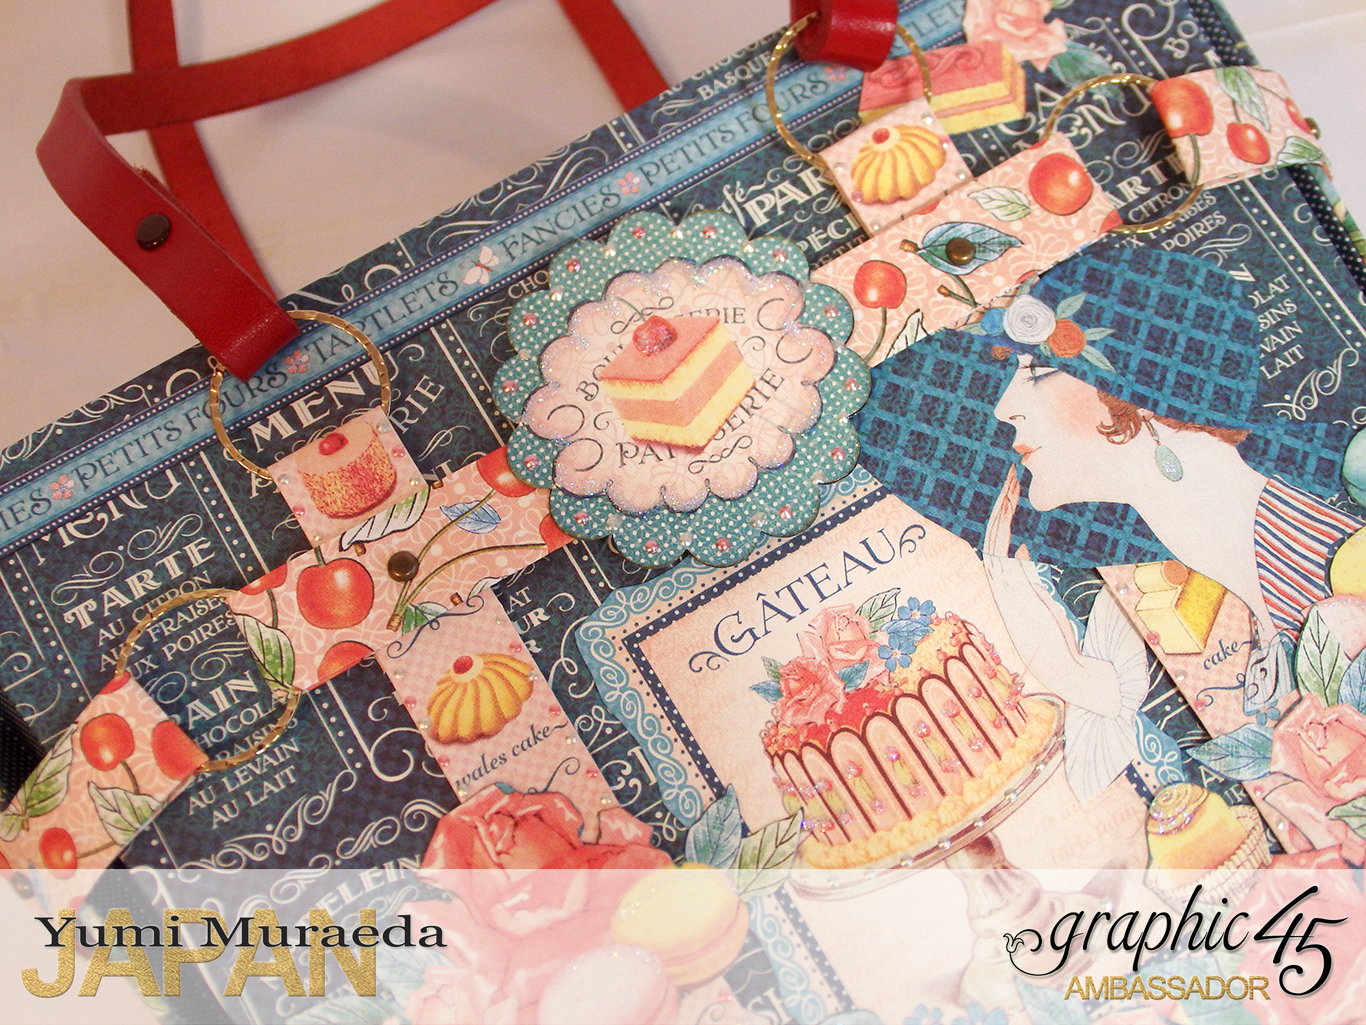 Town Tote Bag Graphic45 Cafe Parisian by Yumi Muraeada Product by Graphic 45 Photo5